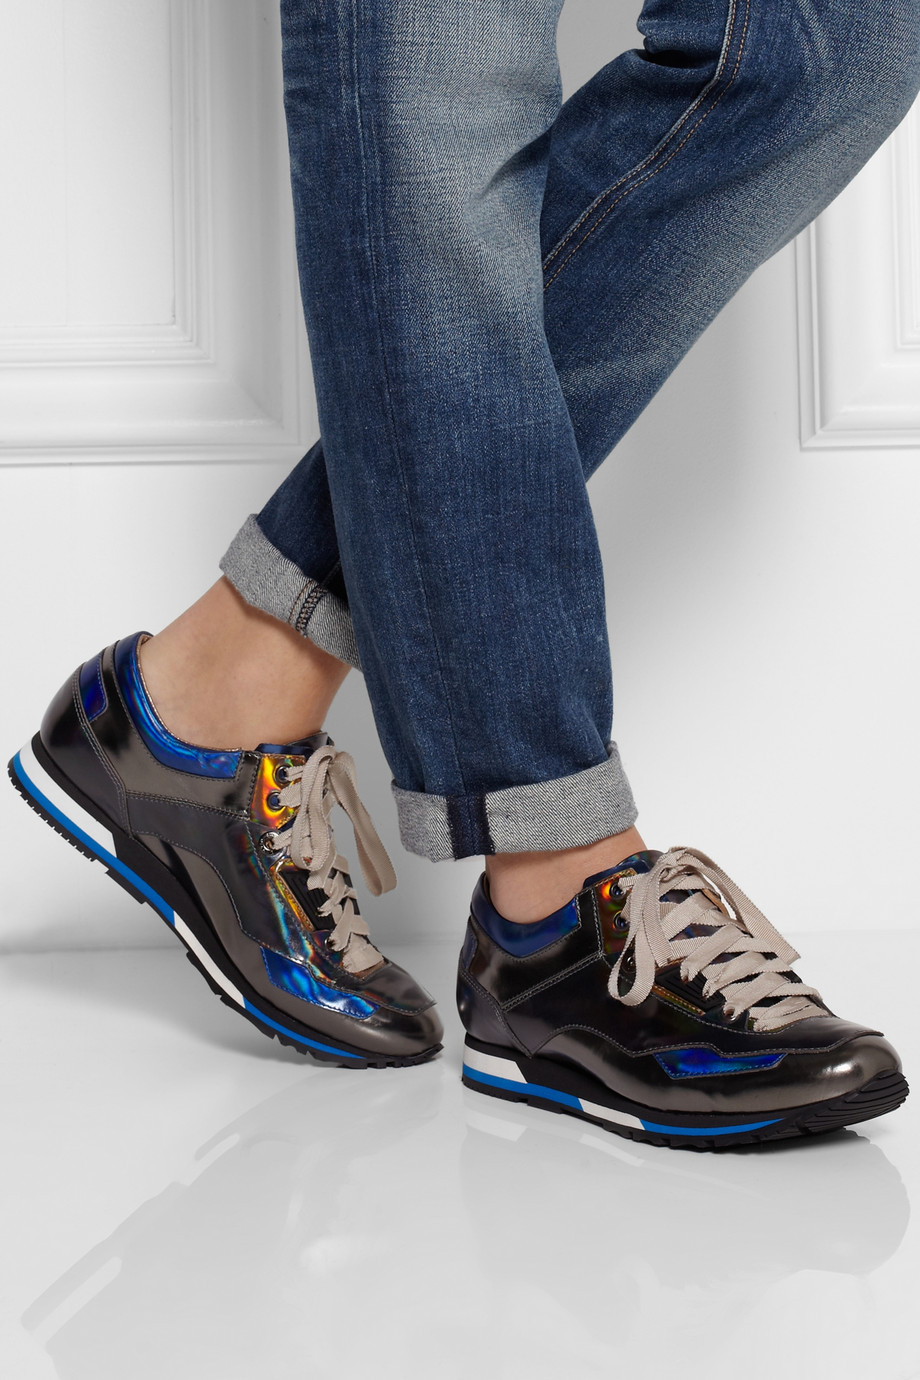 Lanvin Holographic Leather Sneakers in Blue